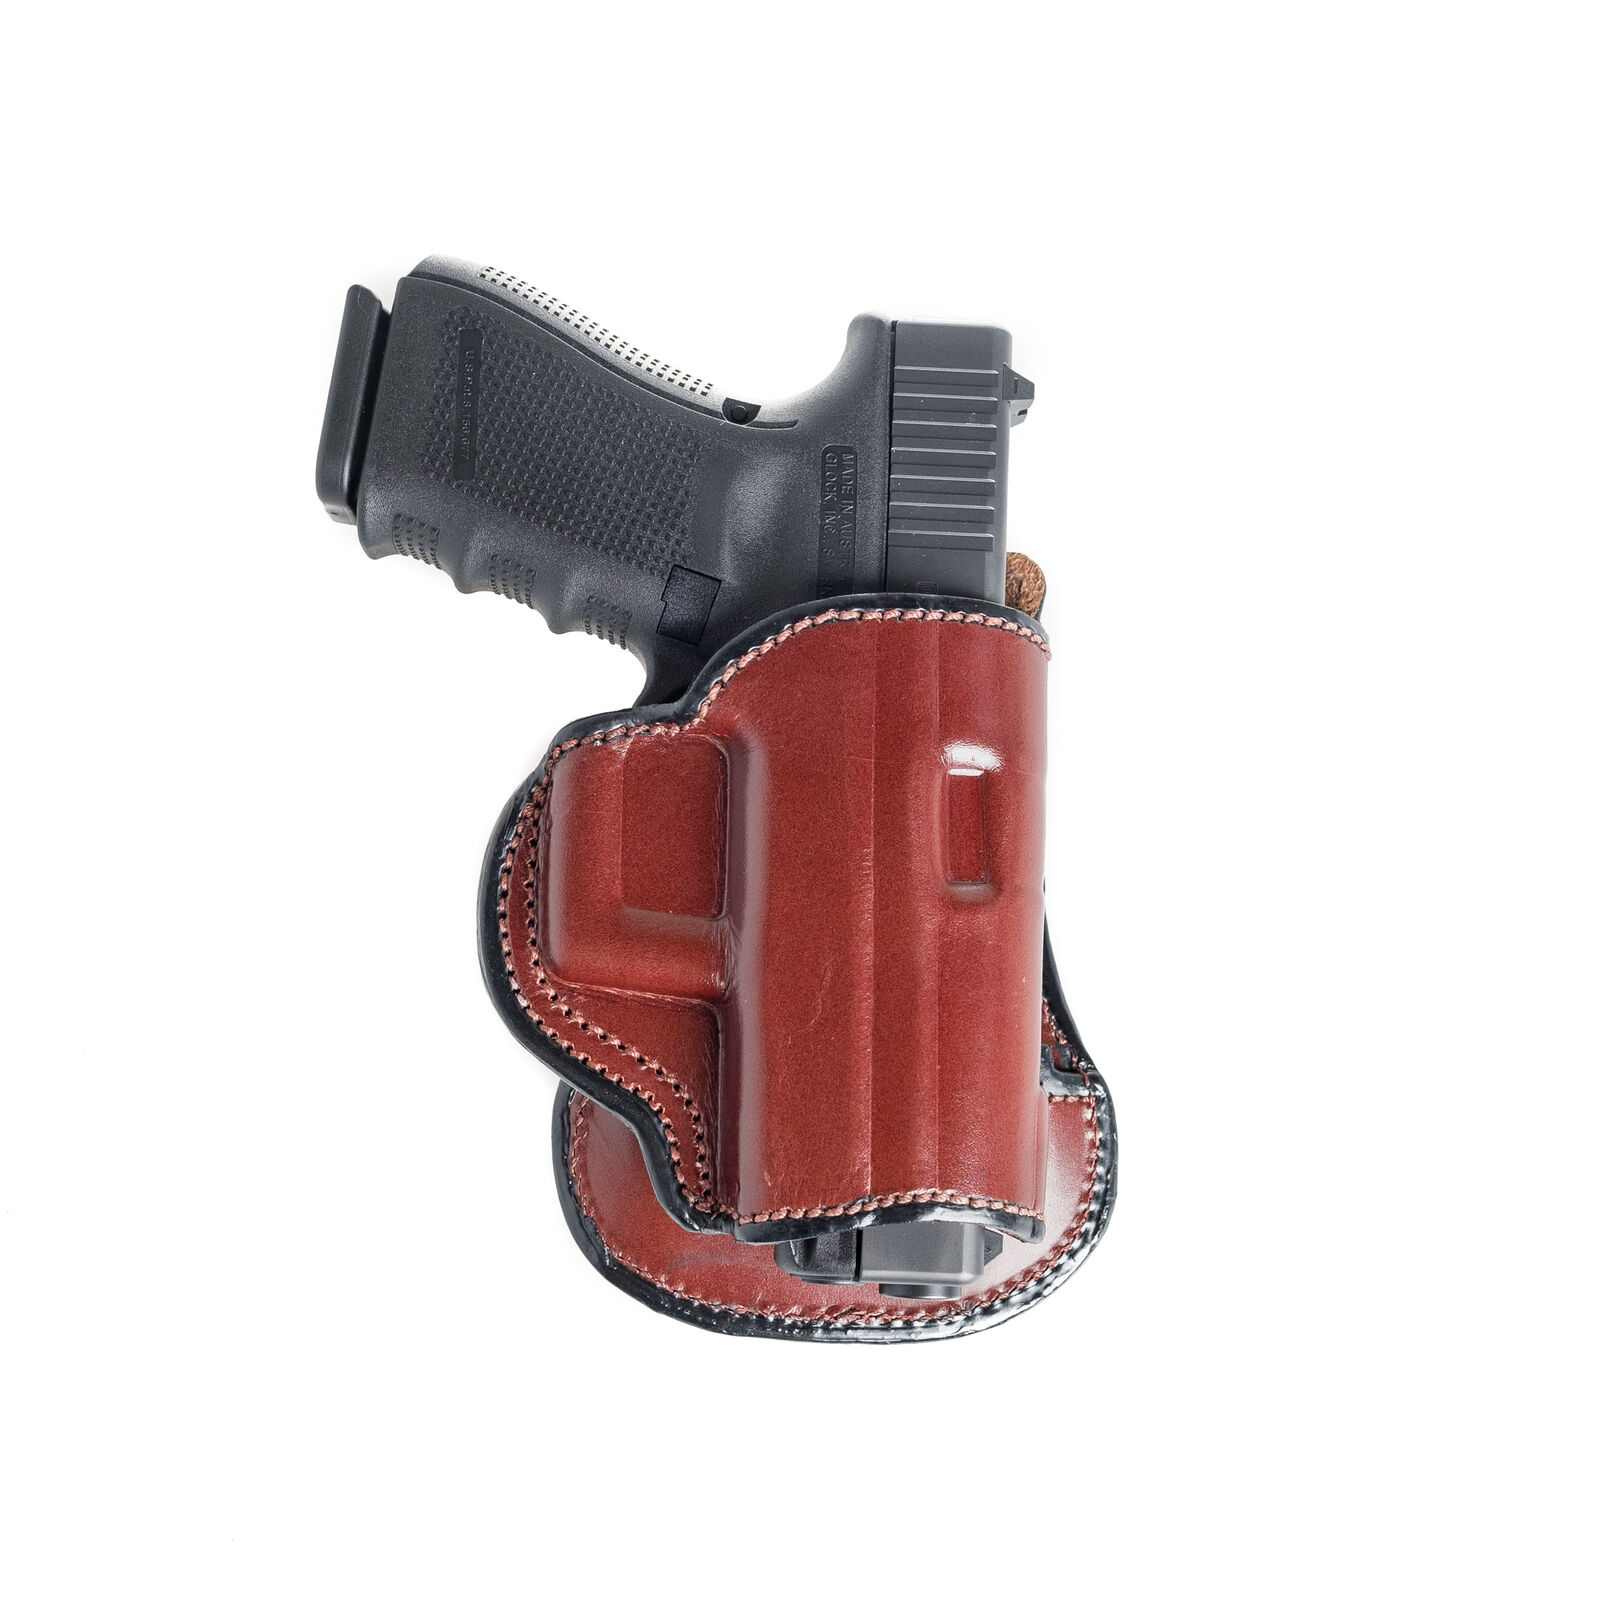 PADDLE HOLSTER FOR SPRINGFIELD XD 4.5 . OWB LEATHER PADDLE W  ADJUSTABLE CANT.